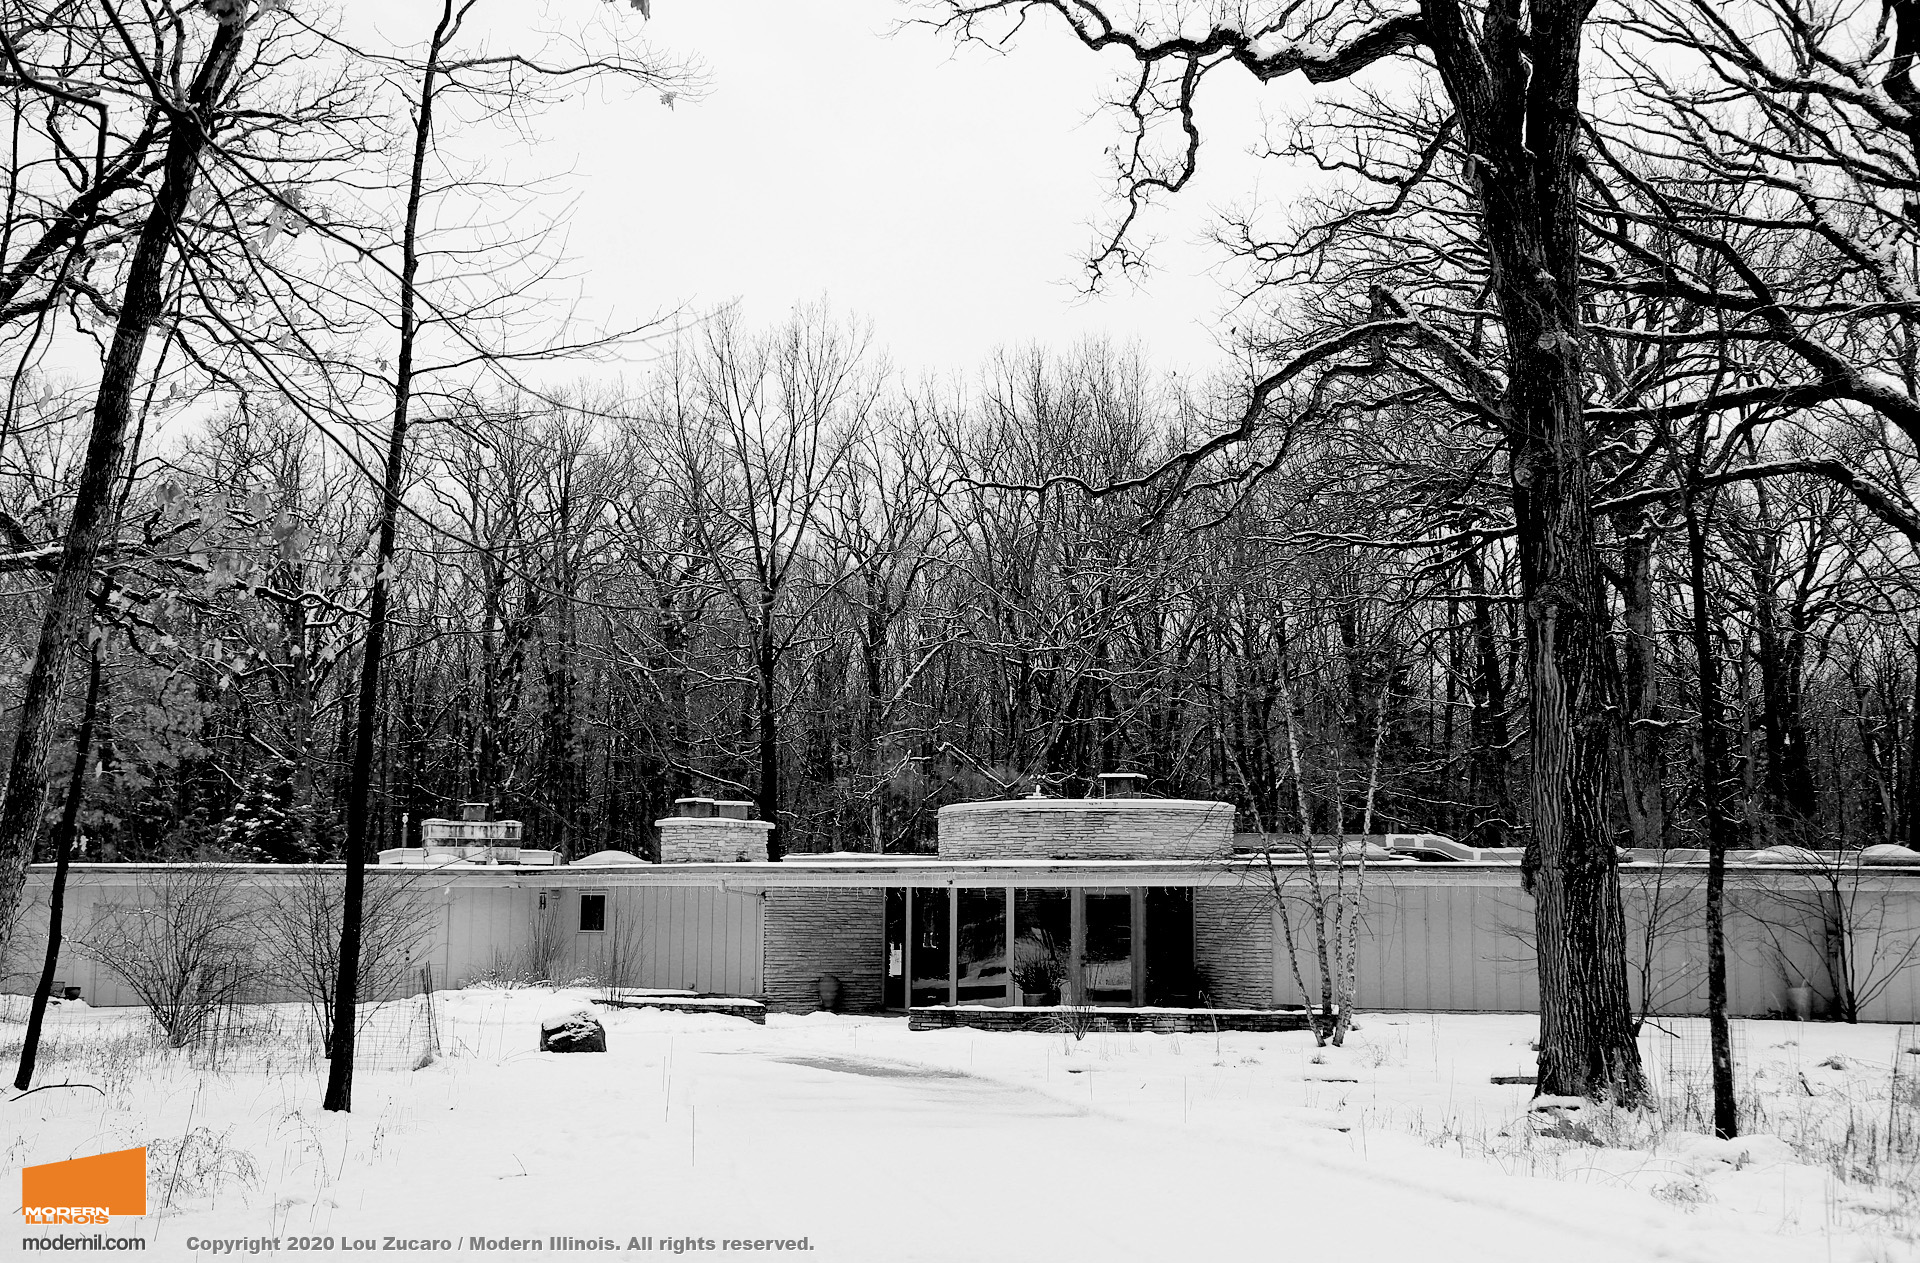 Architect: Edward Humrich. @ Copyright 2020 Lou Zucaro / Modern Illinois. All rights reserved. modernil.com